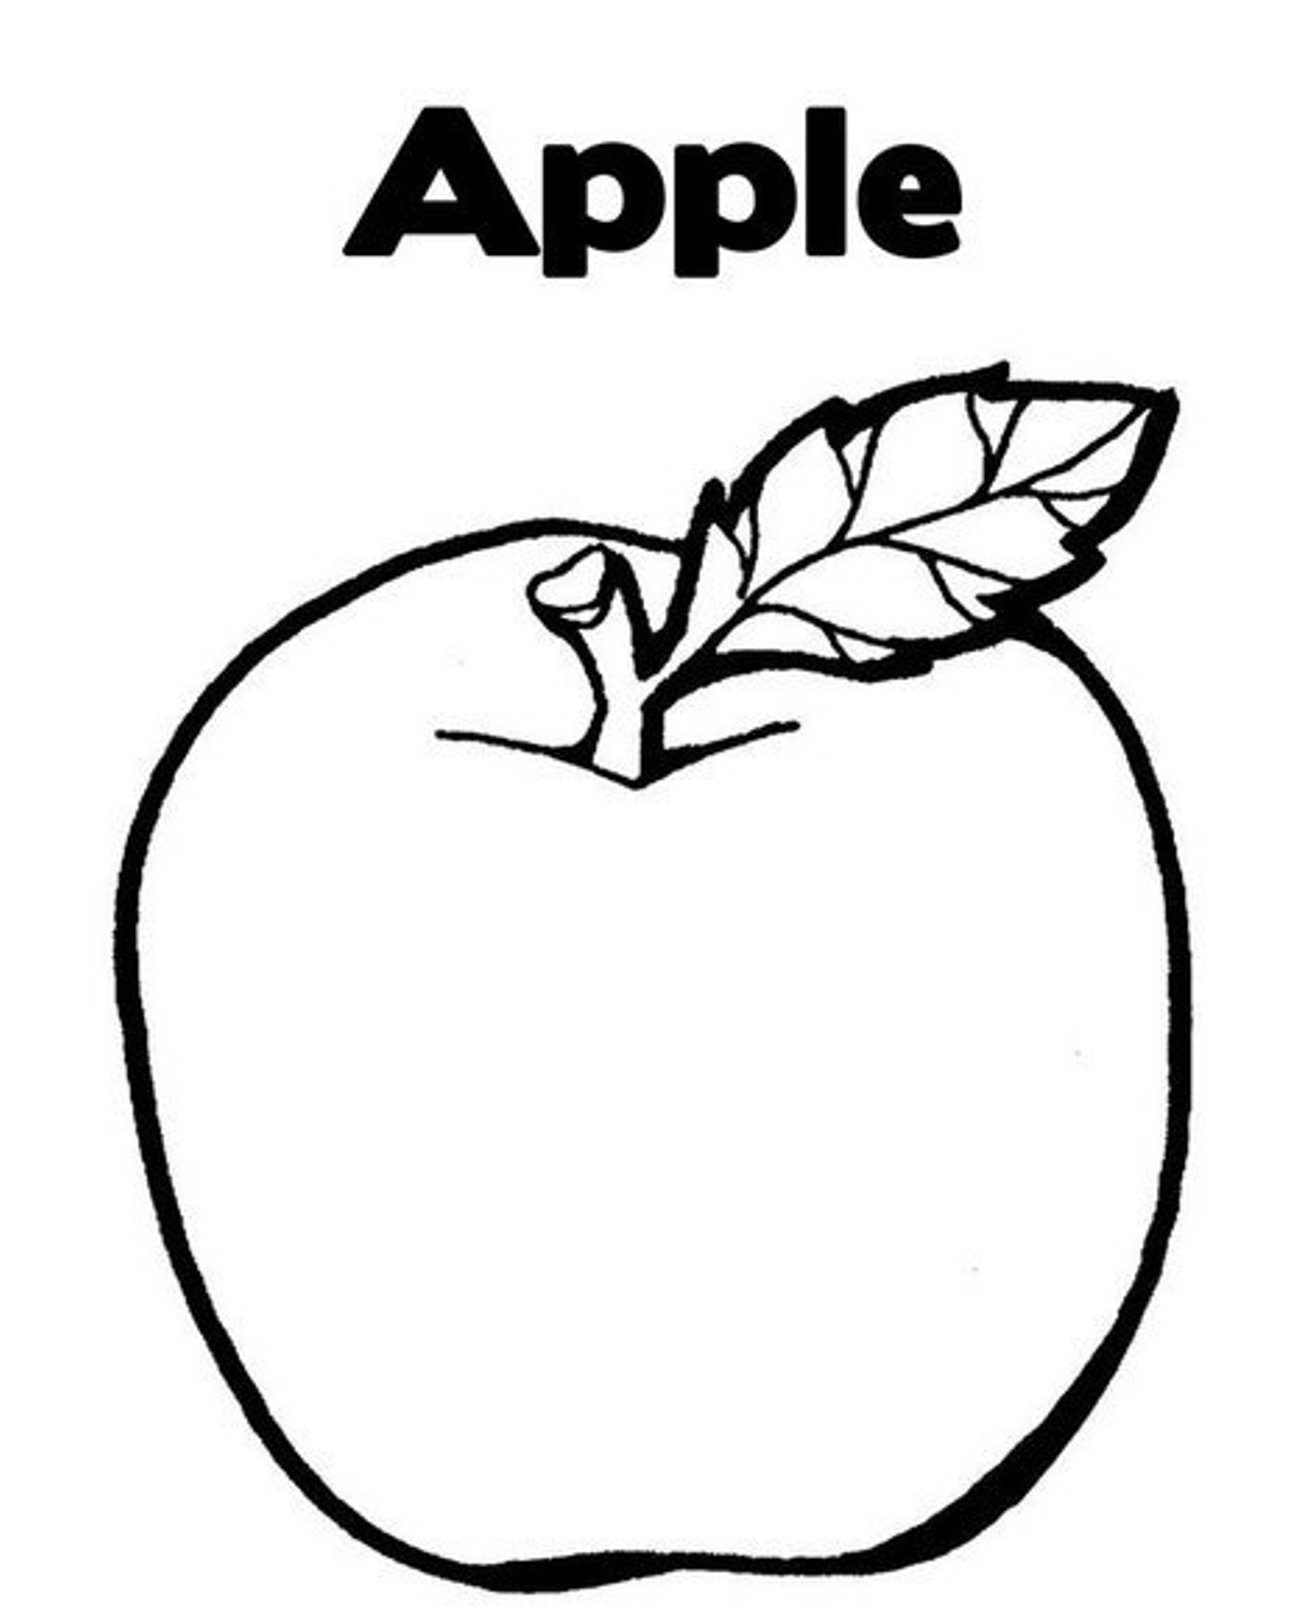 Apple Line Drawing At Getdrawings